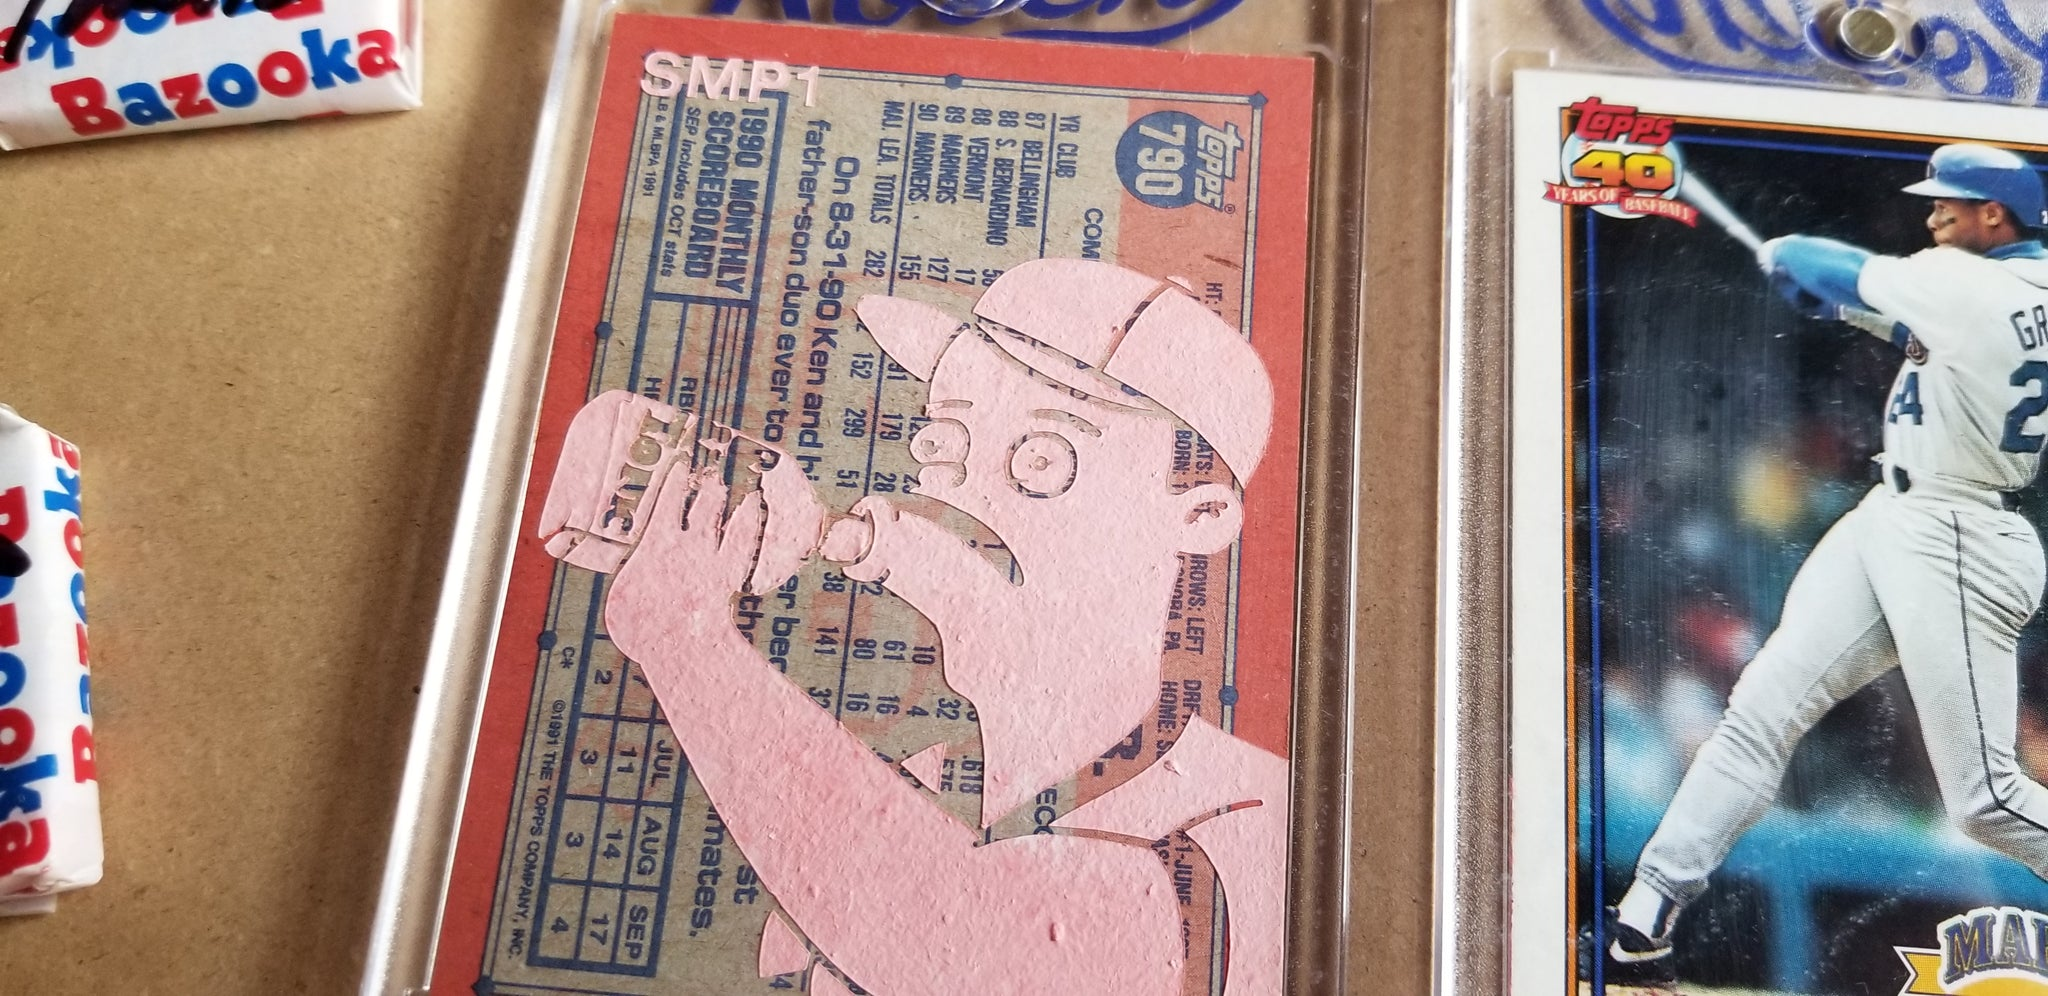 Baseball card art by Matthew Lee Rosen (aka Matthew Rosen) - Simpsons Ken Griffey Jr.